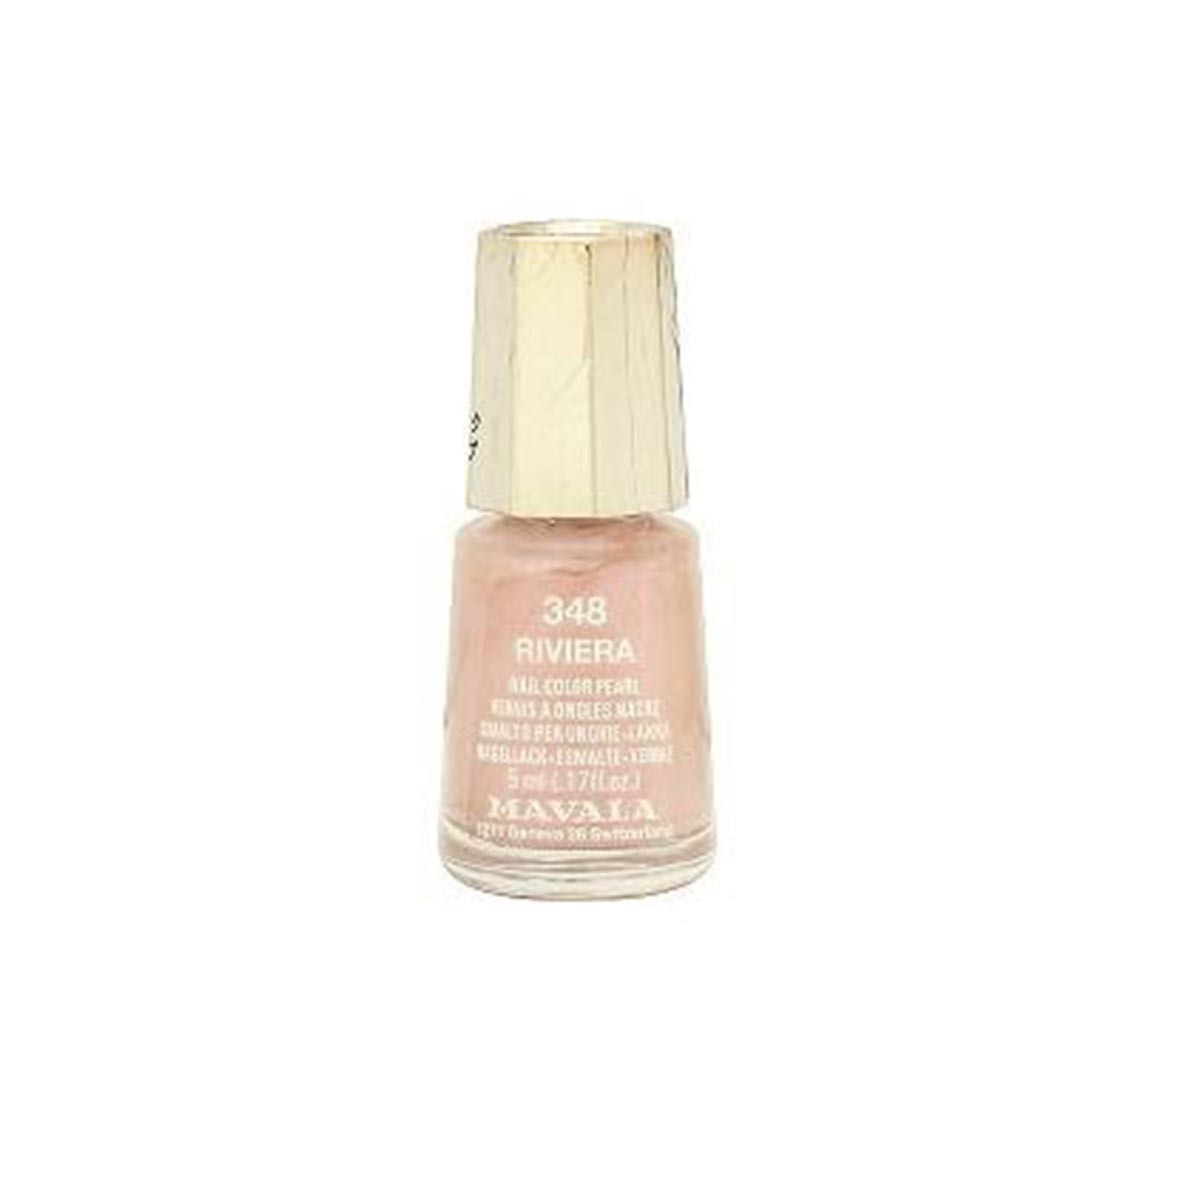 Mavala fragrances Nail Lacquer 348